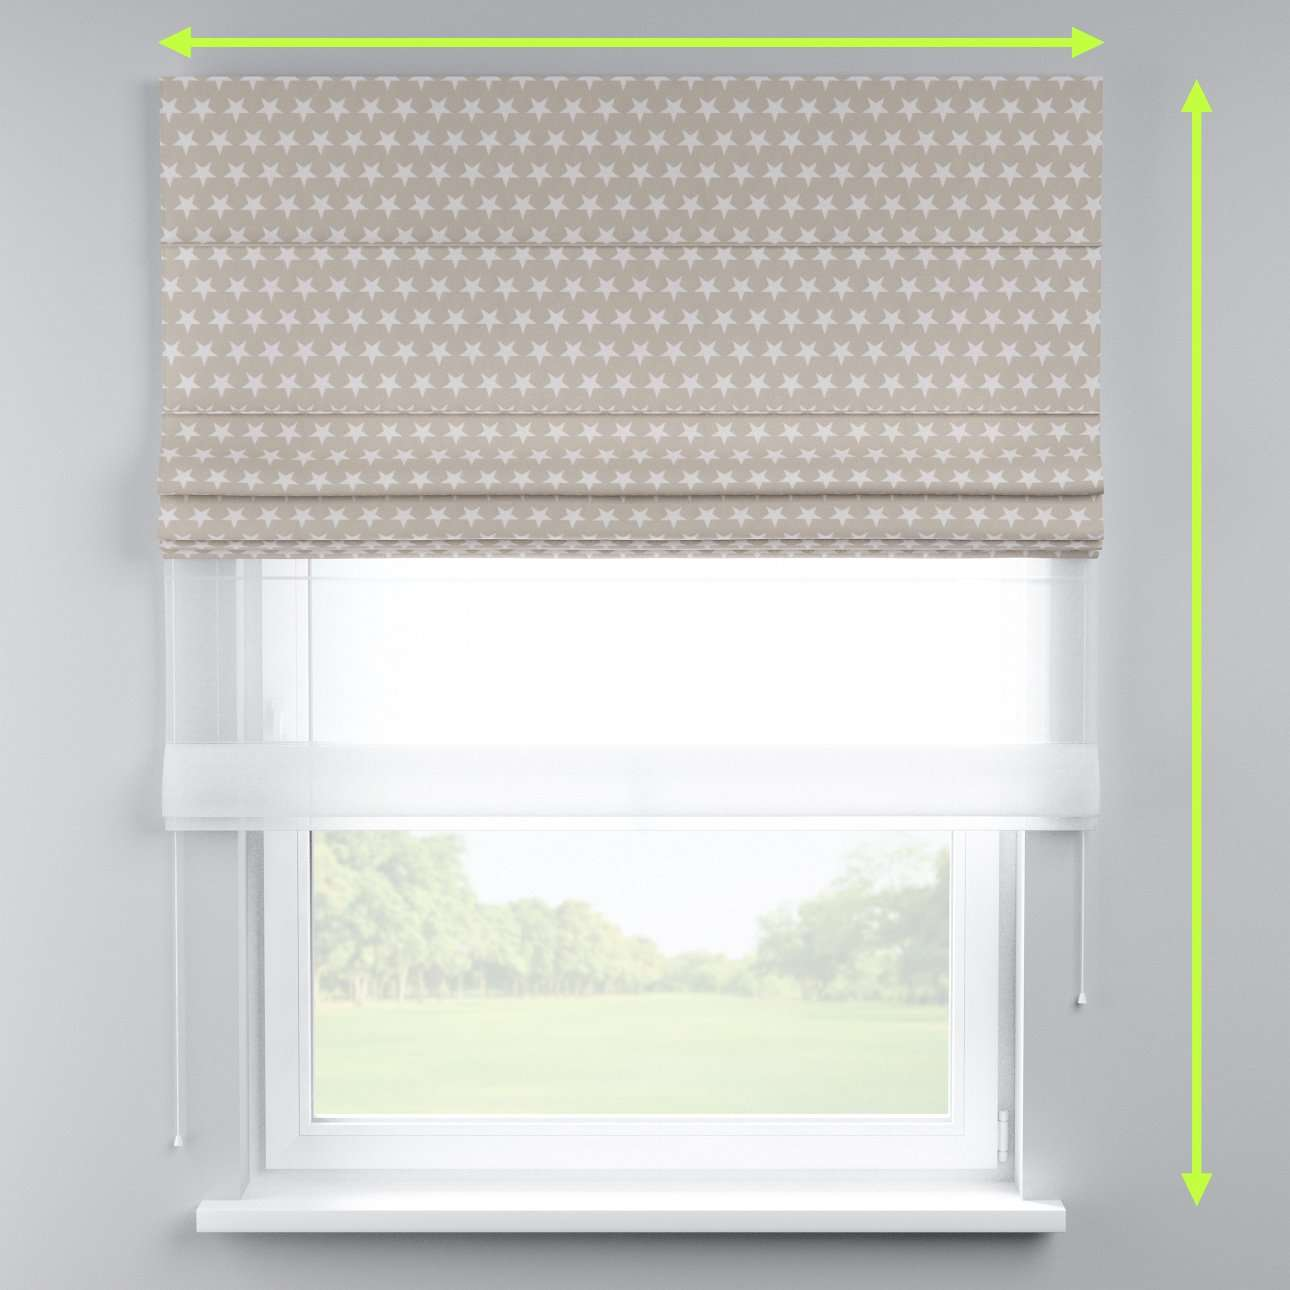 Voile and fabric roman blind (DUO II) in collection Marina, fabric: 140-62